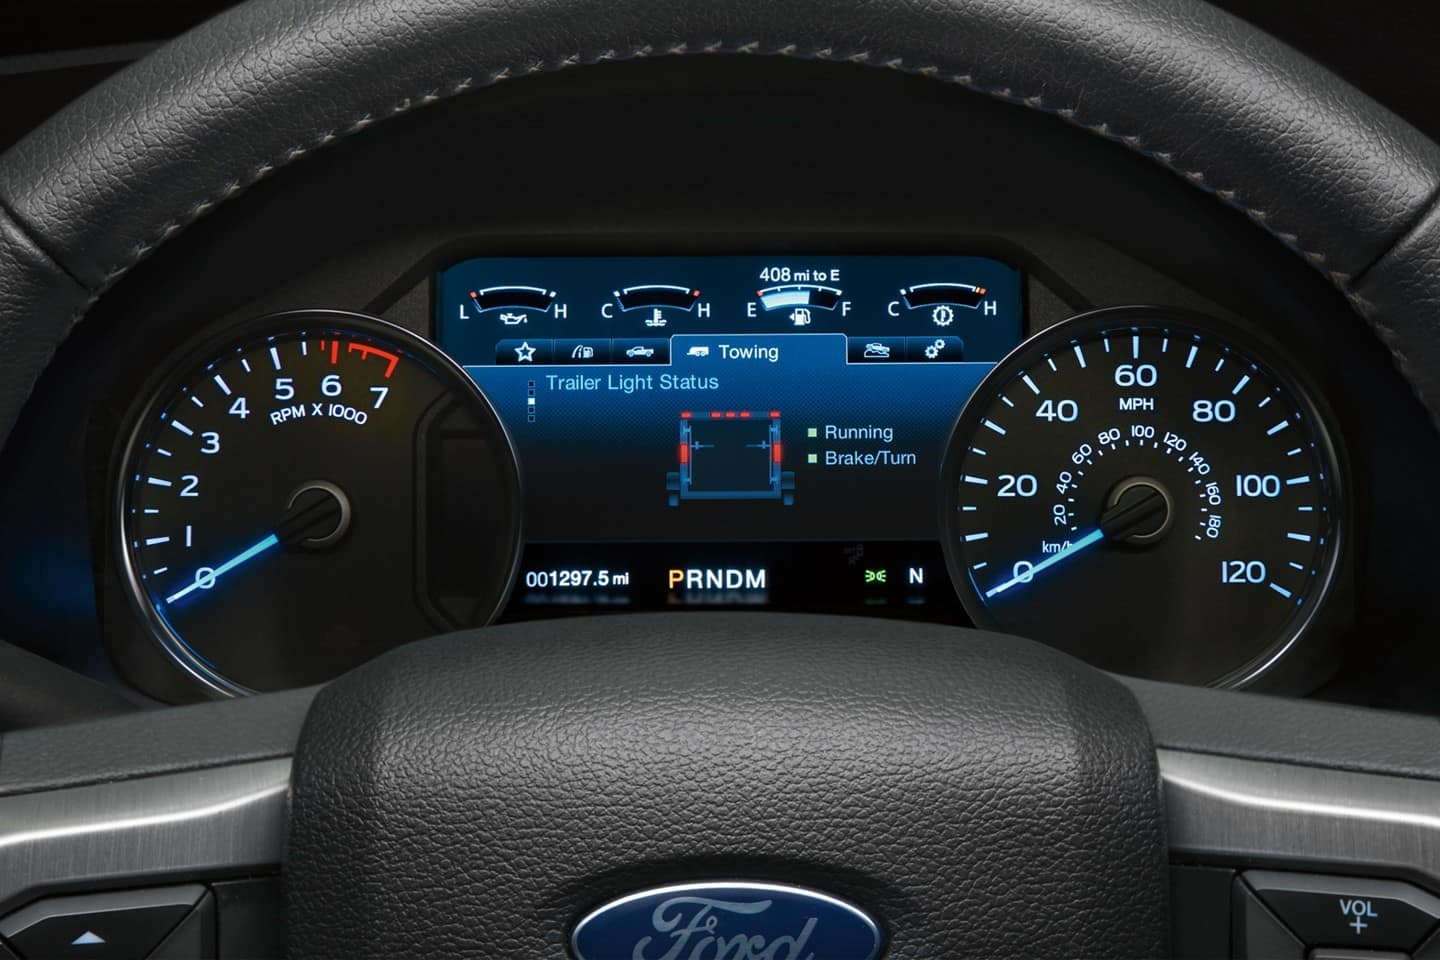 2019 Ford F-150 Infotainment Cluster